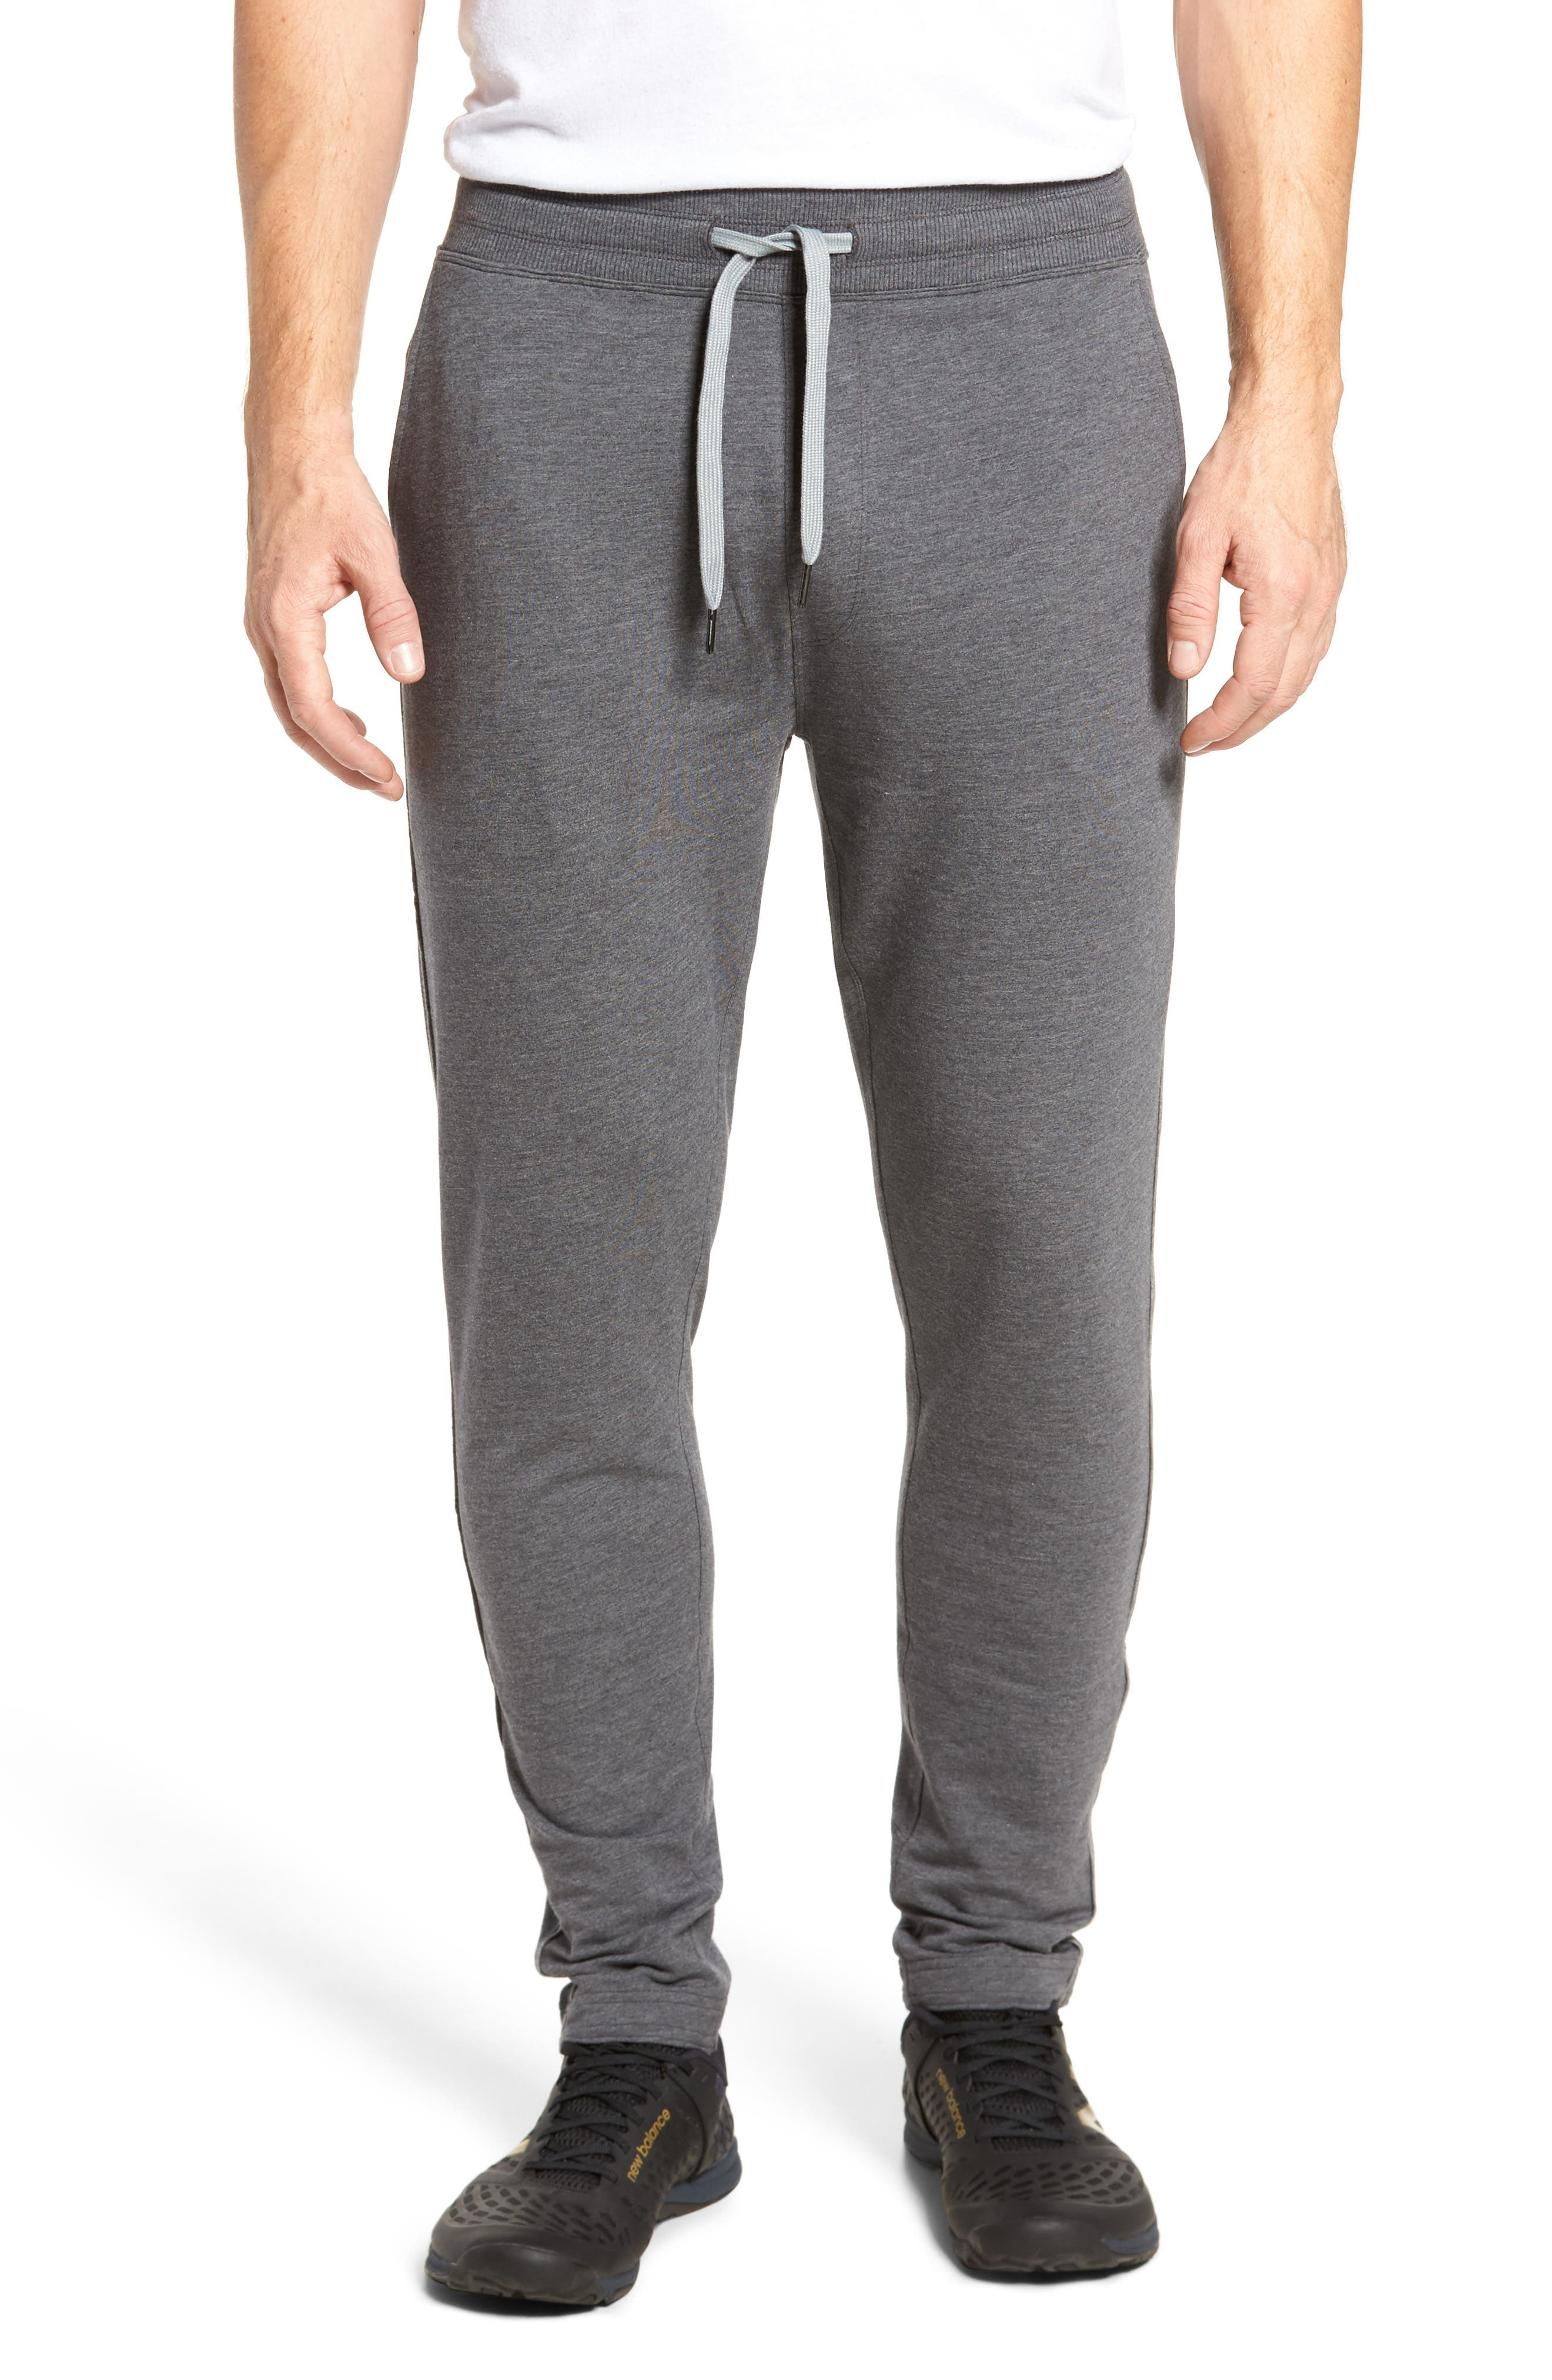 Alternate Image 1 Selected - tasc Performance Legacy Sweatpants